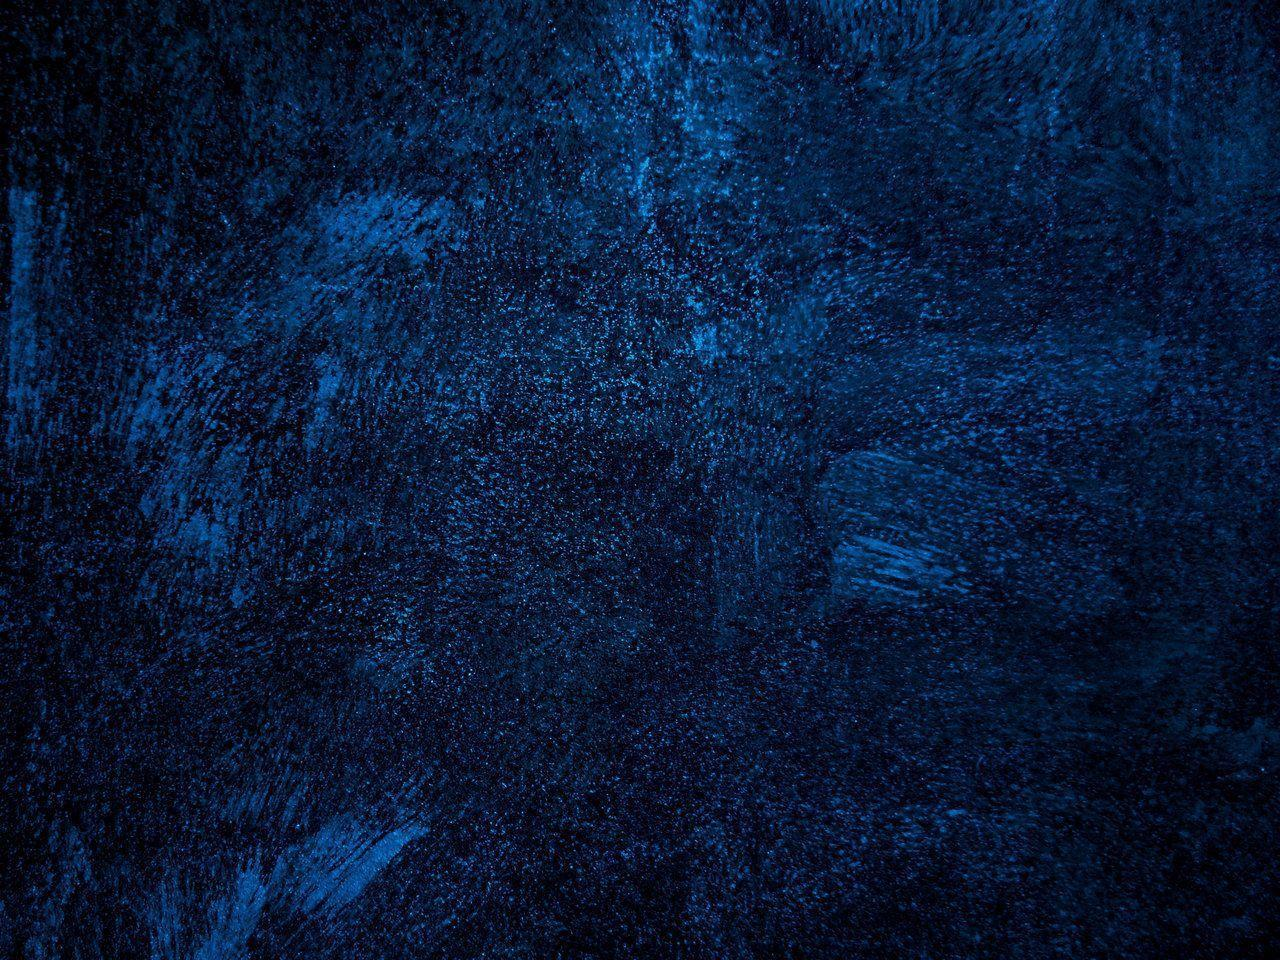 Dark Blue Backgrounds Image - Wallpaper Cave Dark Blue Background Hd